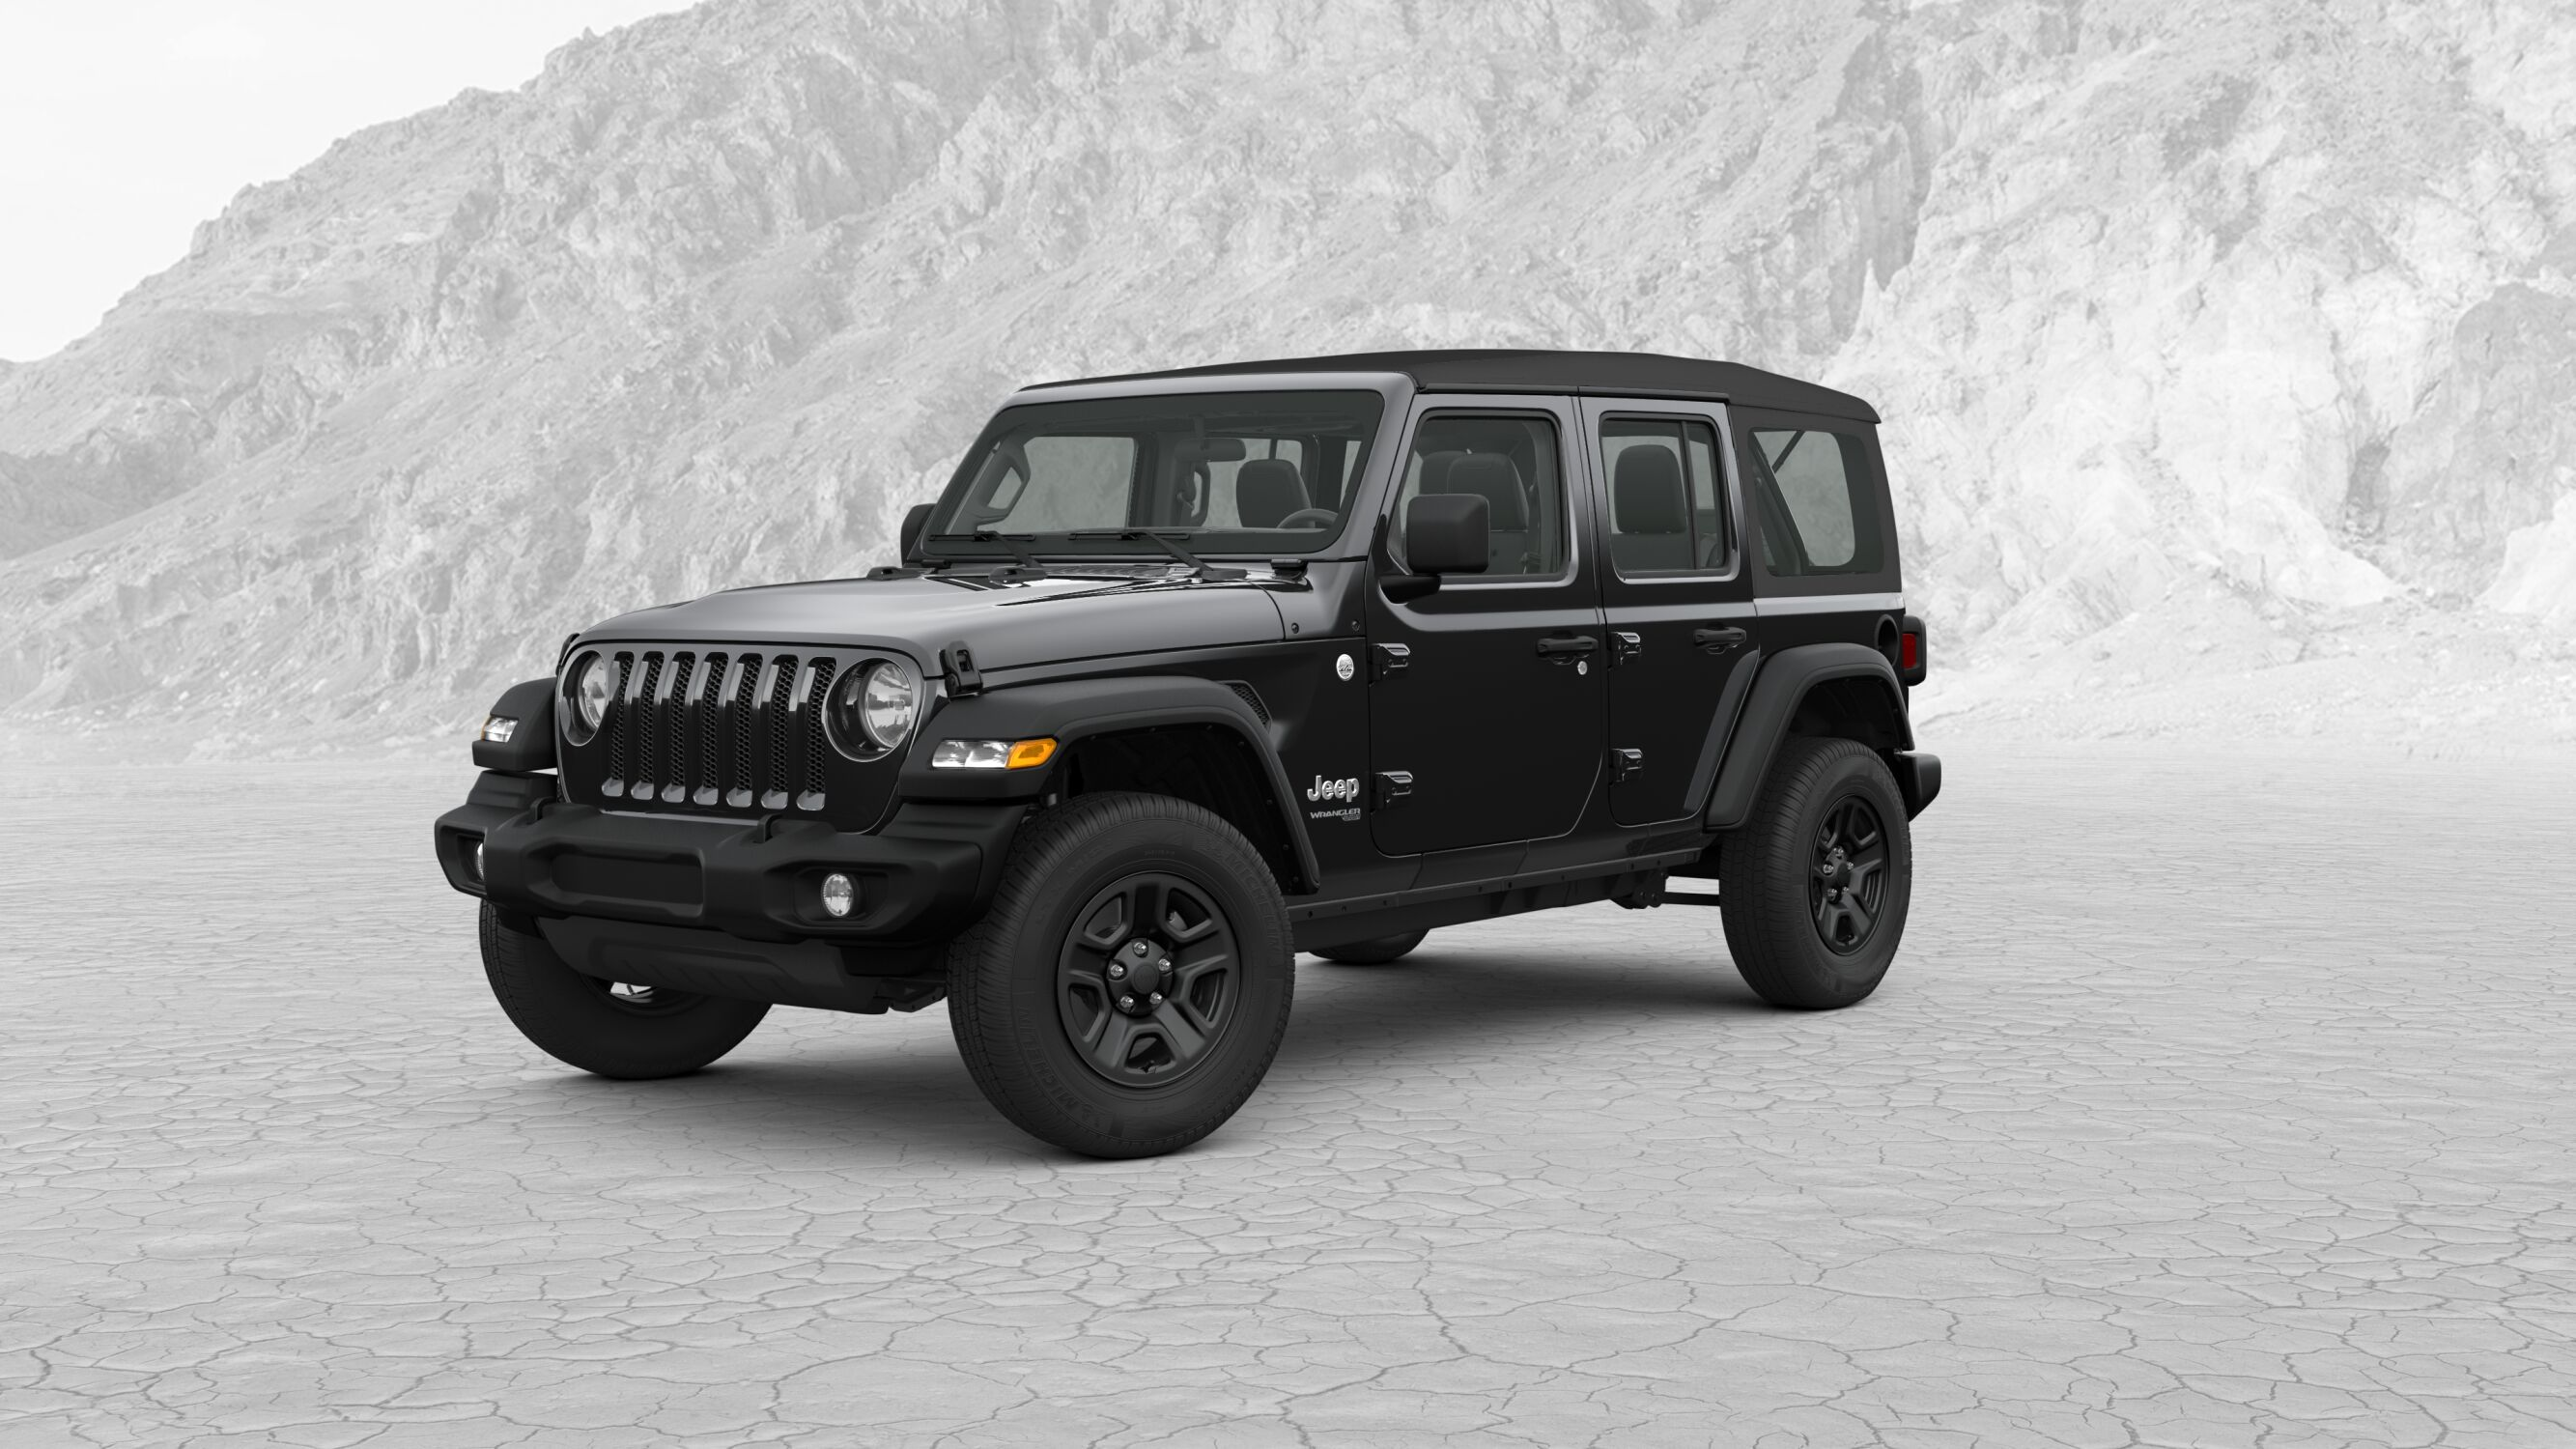 2019 Jeep Wrangler Unlimited Sport Pratt Chrysler Calais Me